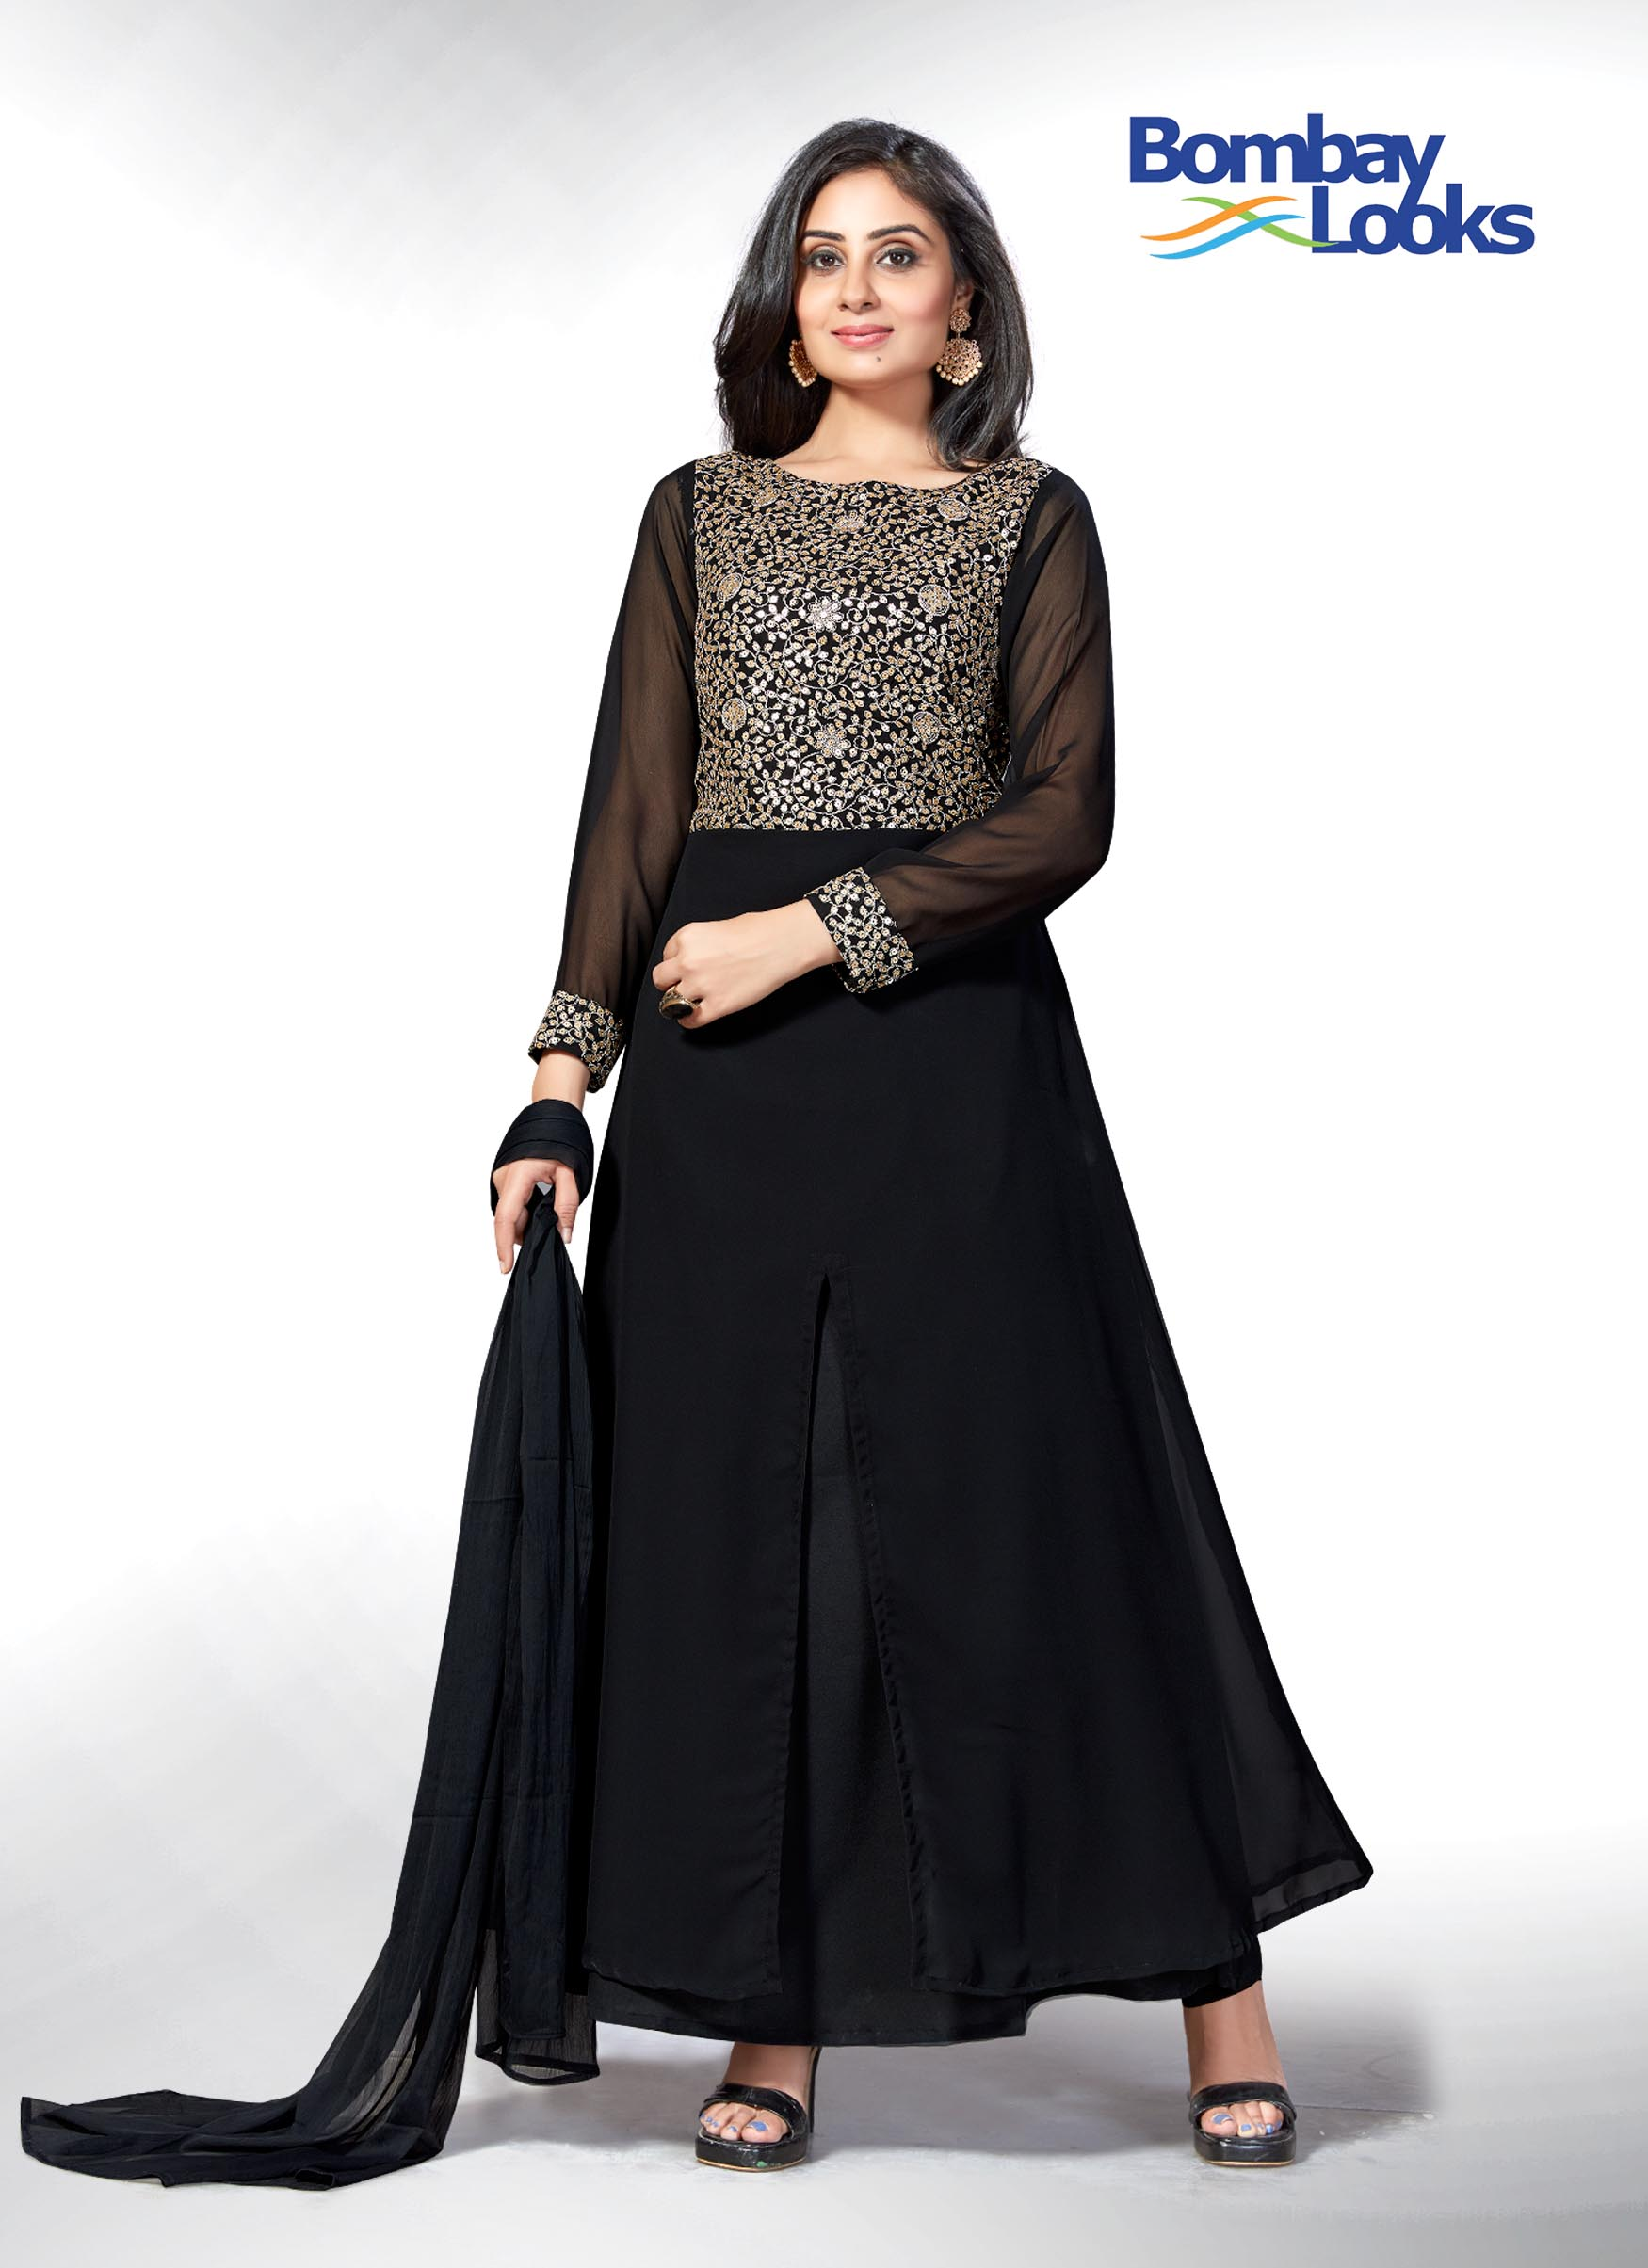 Glamorous layered black anarkali style suit with rich embroidery on the bodice and front slit